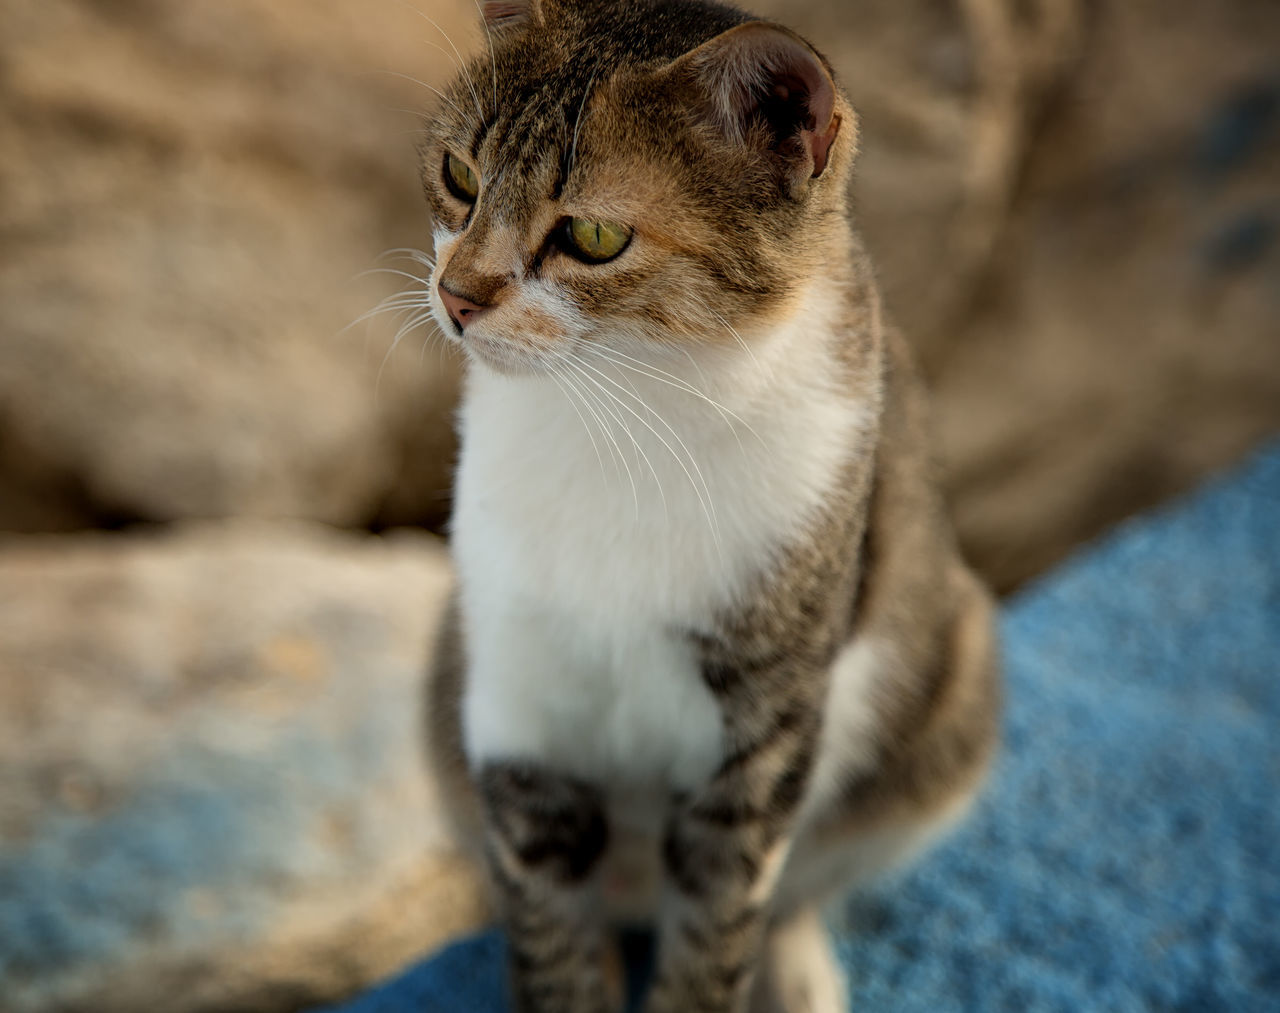 Street Cats Animal Themes Boulder Cats Close-up Coastline Day Domestic Animals Domestic Cat Feline Feline Portraits Mammal Mersin Turkey No People One Animal Outdoors Pets Rock Formation Street Cats